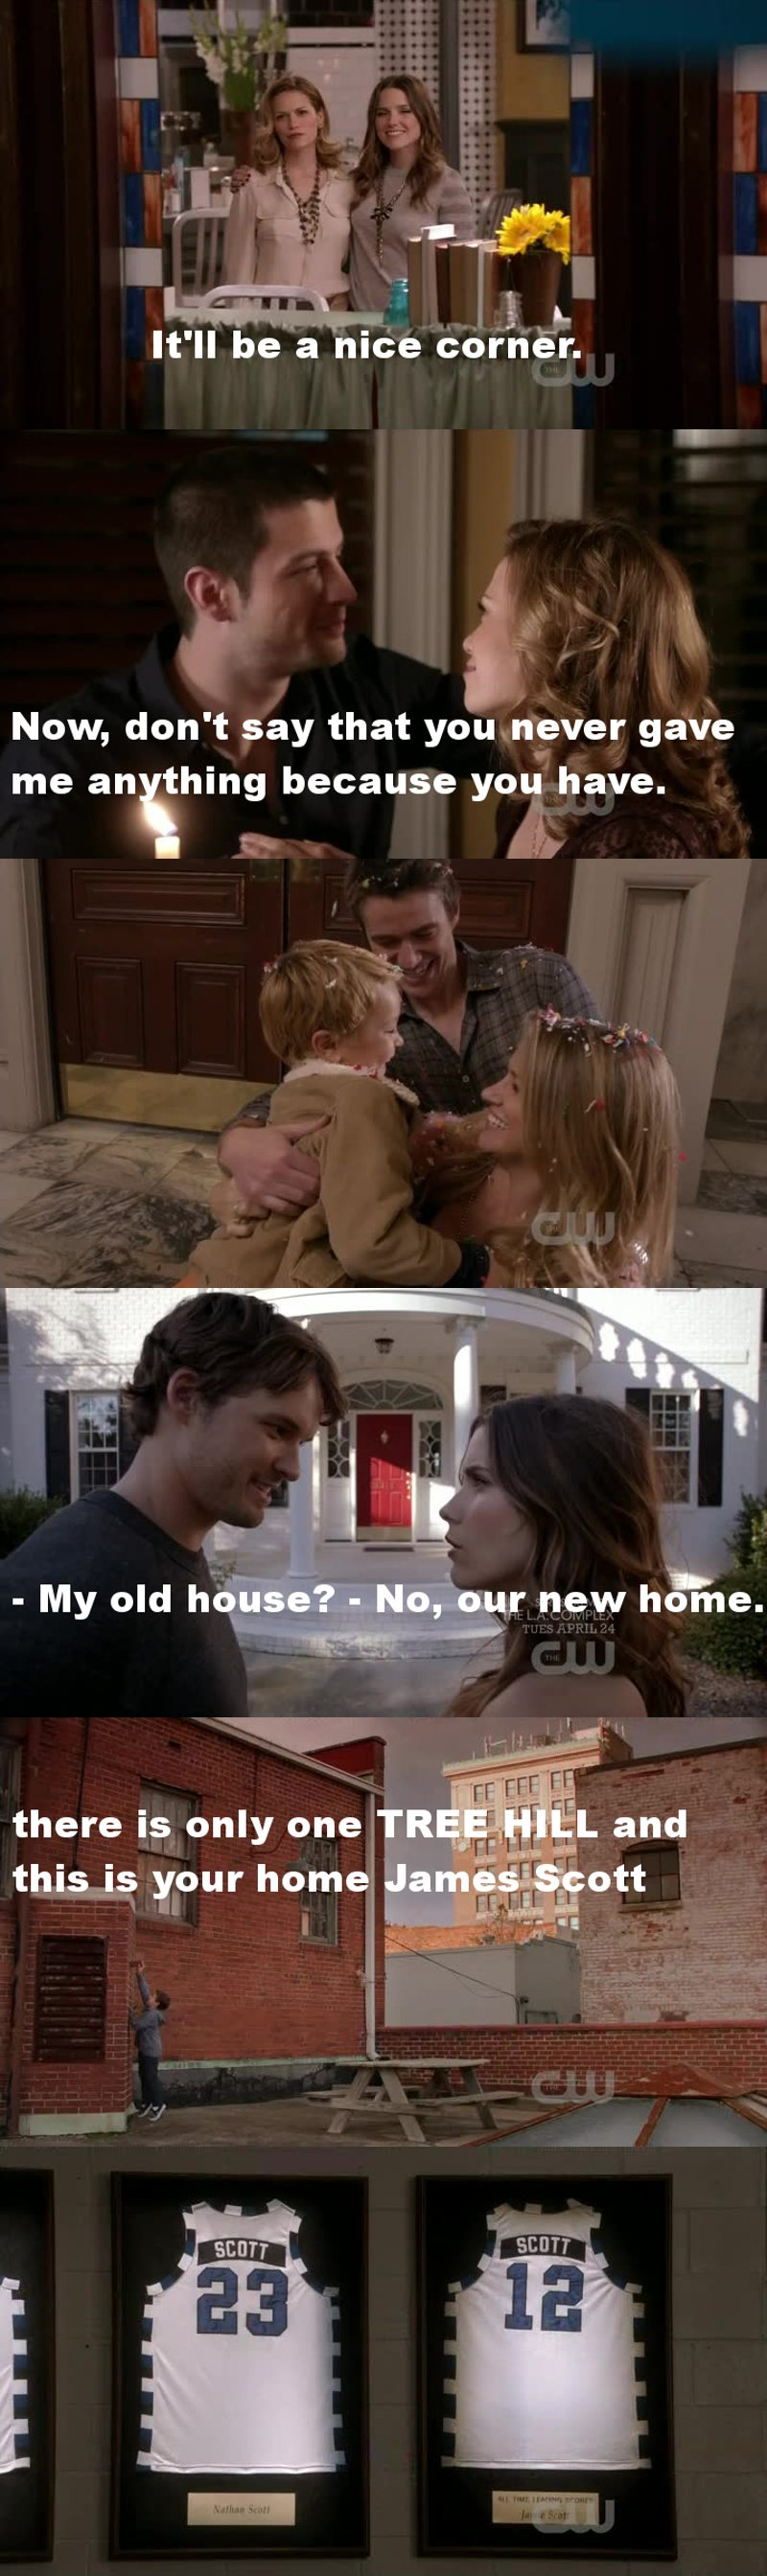 I cried all time I will miss this show so much. I started watching this a few years after the end of it but I really like it. He taught me that dreams will become true if we really believe in them. He taught me that every person could be forgiven and we should hold all people that make us feel better. OTH YOU WILL MISS A LOT.